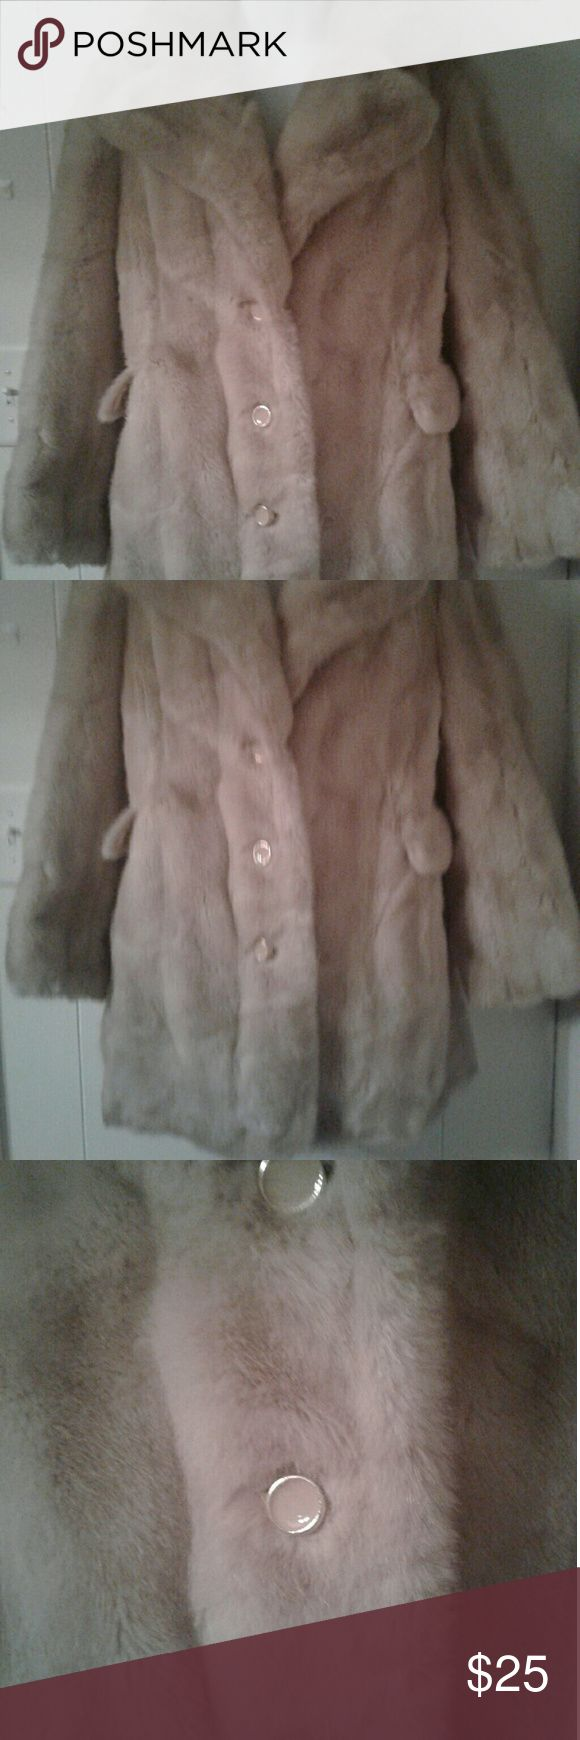 Tissavel vintage faux fur coat Tissavel vintage faux fur coat. Please look at all pics & read the discription* This jacket says imported from France but has a made in the U.S.A. label. That's a head scratcher to me because I don't know much about vintage clothing.  The inside shell has some age stains & spots. The lining is coming loose from bottom & can easily be sown. The outside has some stains as noted in pic but there wasn't room to post pics of all stains. If dry cleaned I think this…